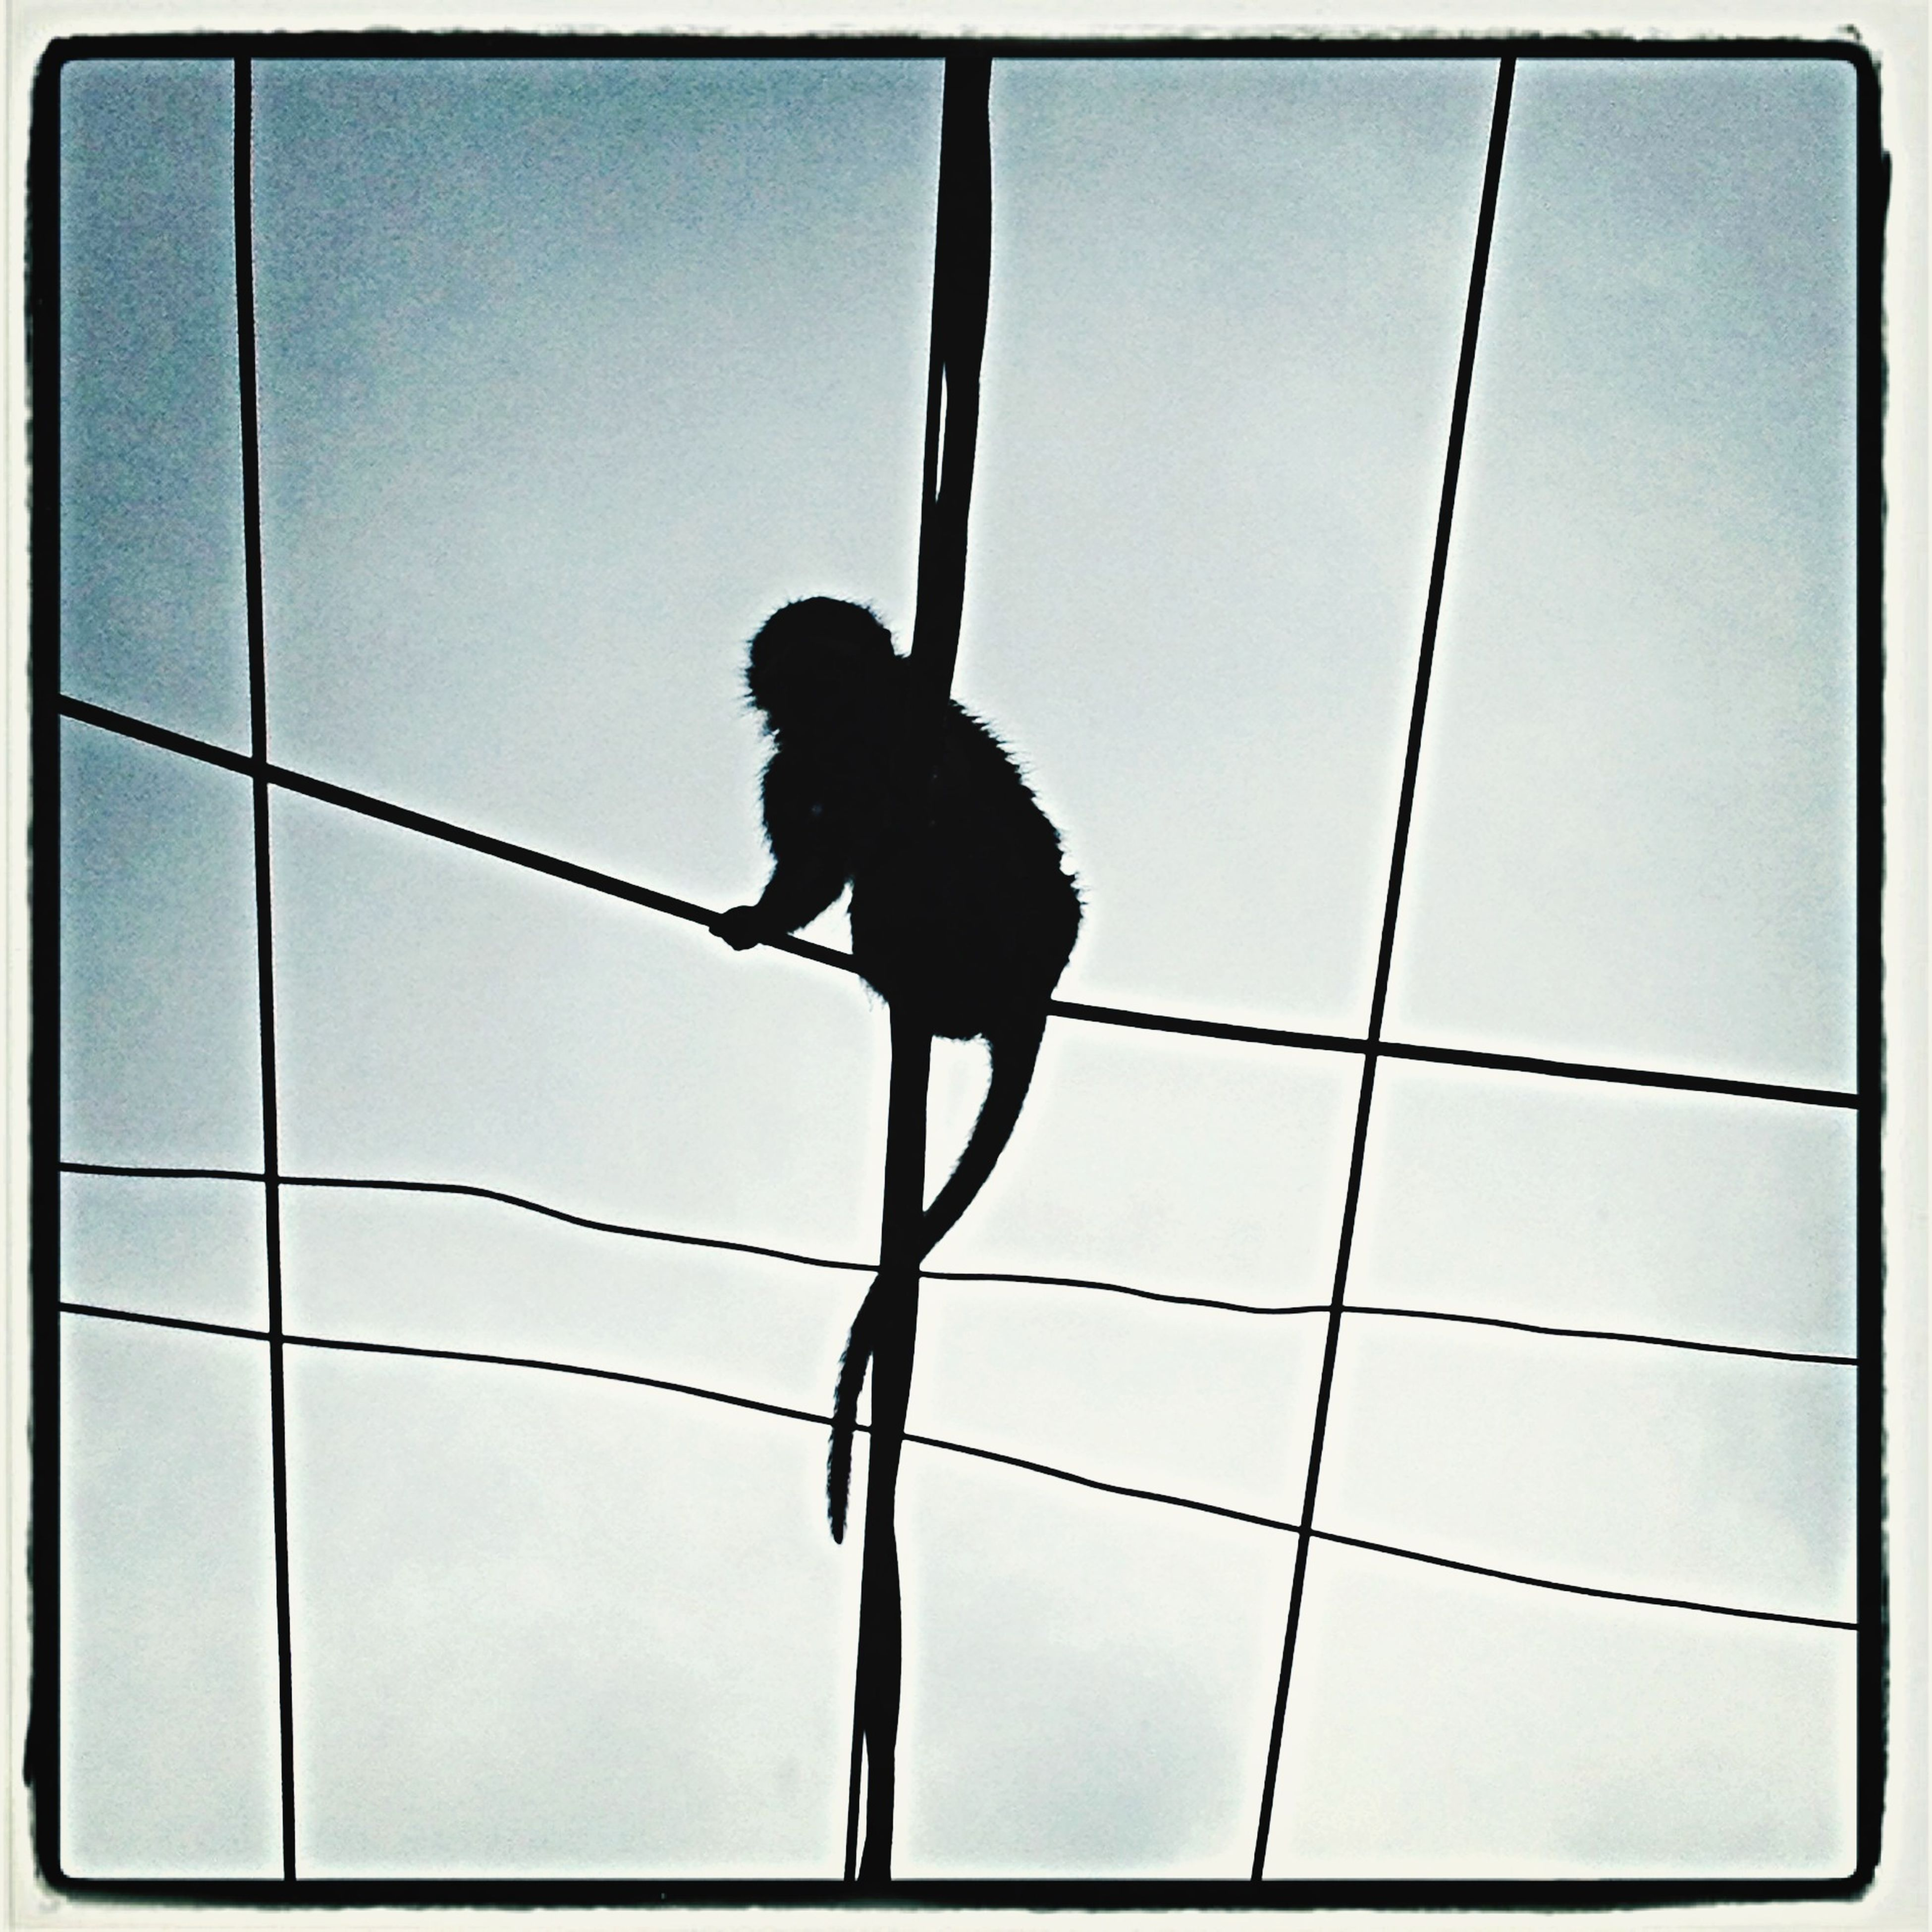 animal themes, one animal, low angle view, full length, transfer print, bird, silhouette, auto post production filter, wildlife, animals in the wild, perching, day, indoors, no people, black color, standing, rear view, sky, pole